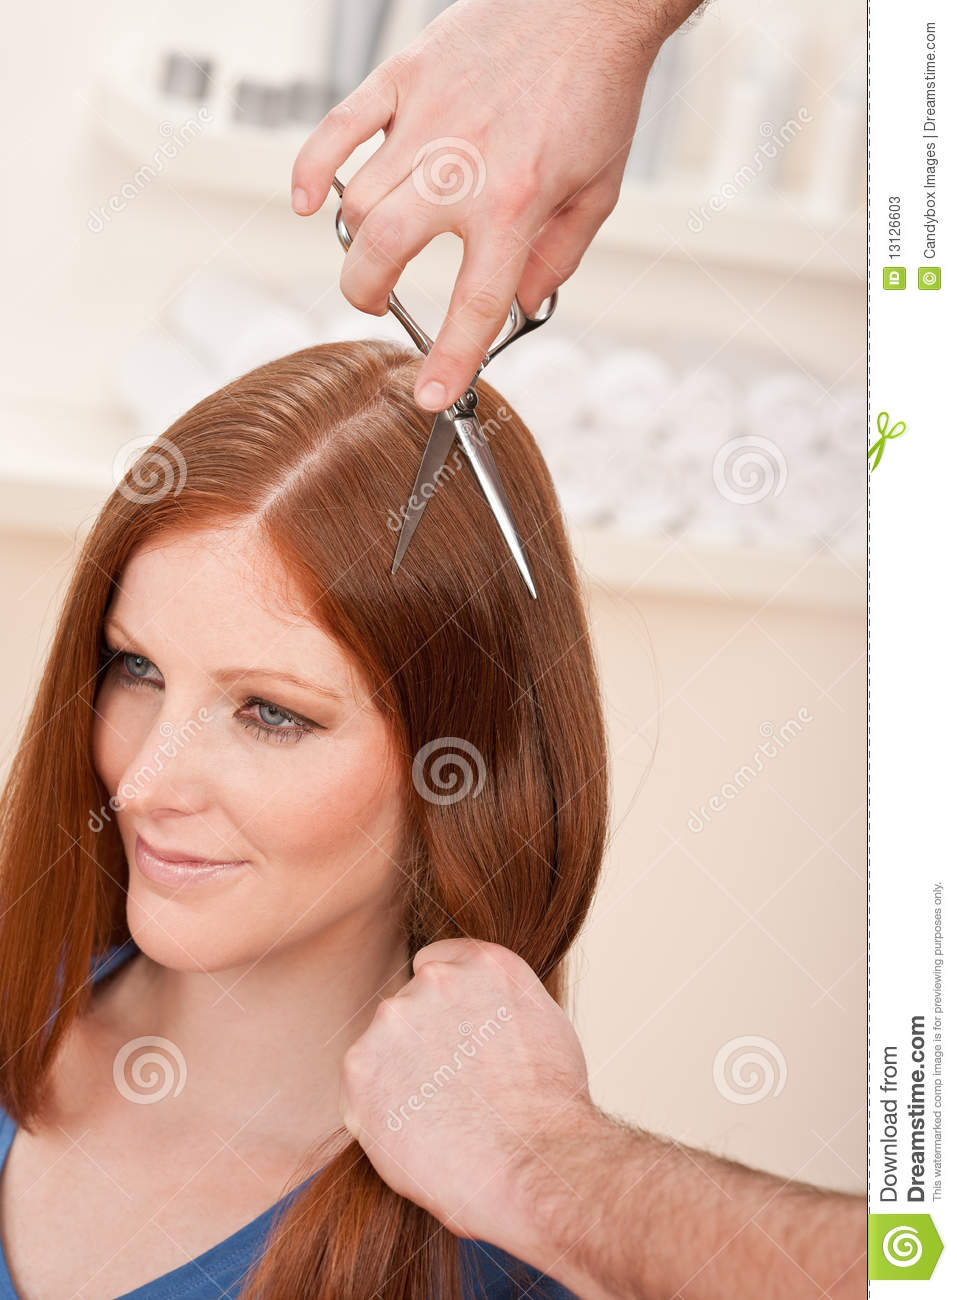 Professional Hairdresser : Professional Hairdresser Cut With Scissors Stock Photos - Image ...